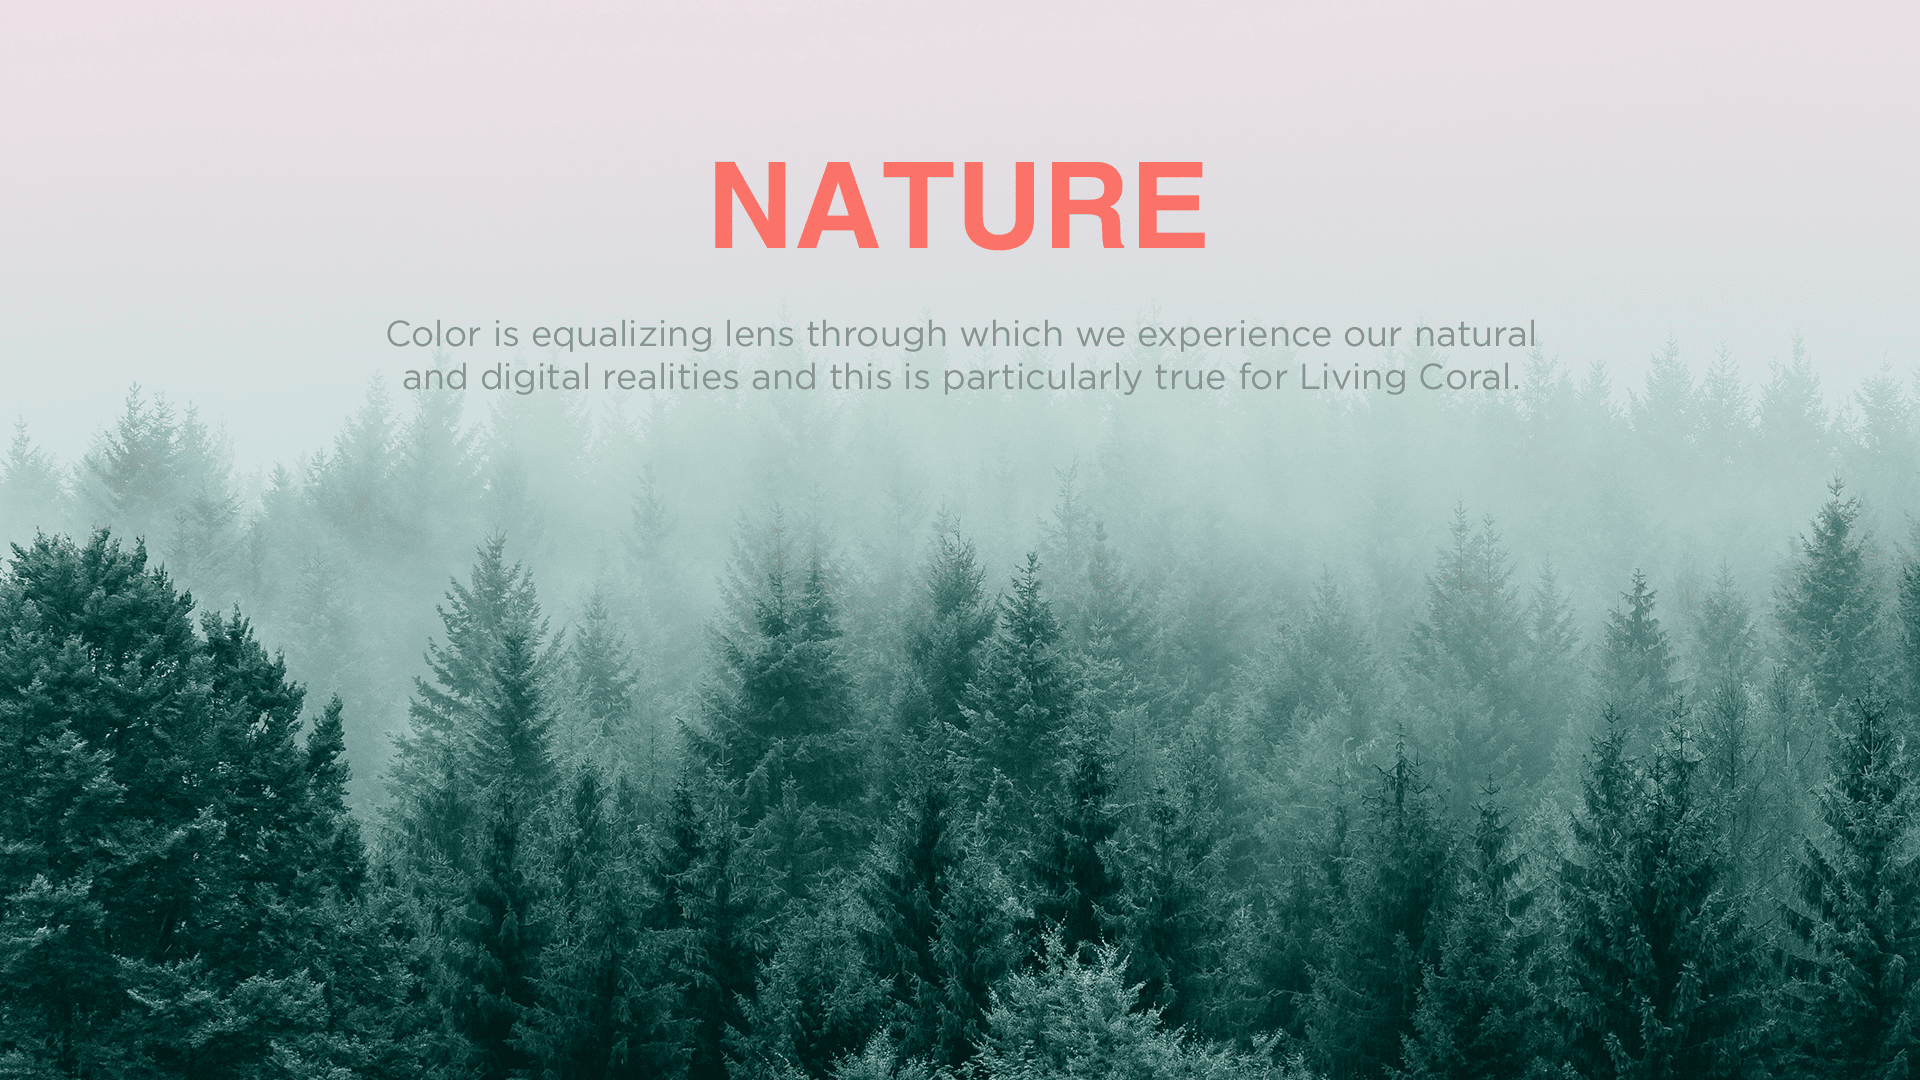 Image with text Nature and a background photo of a misty forest